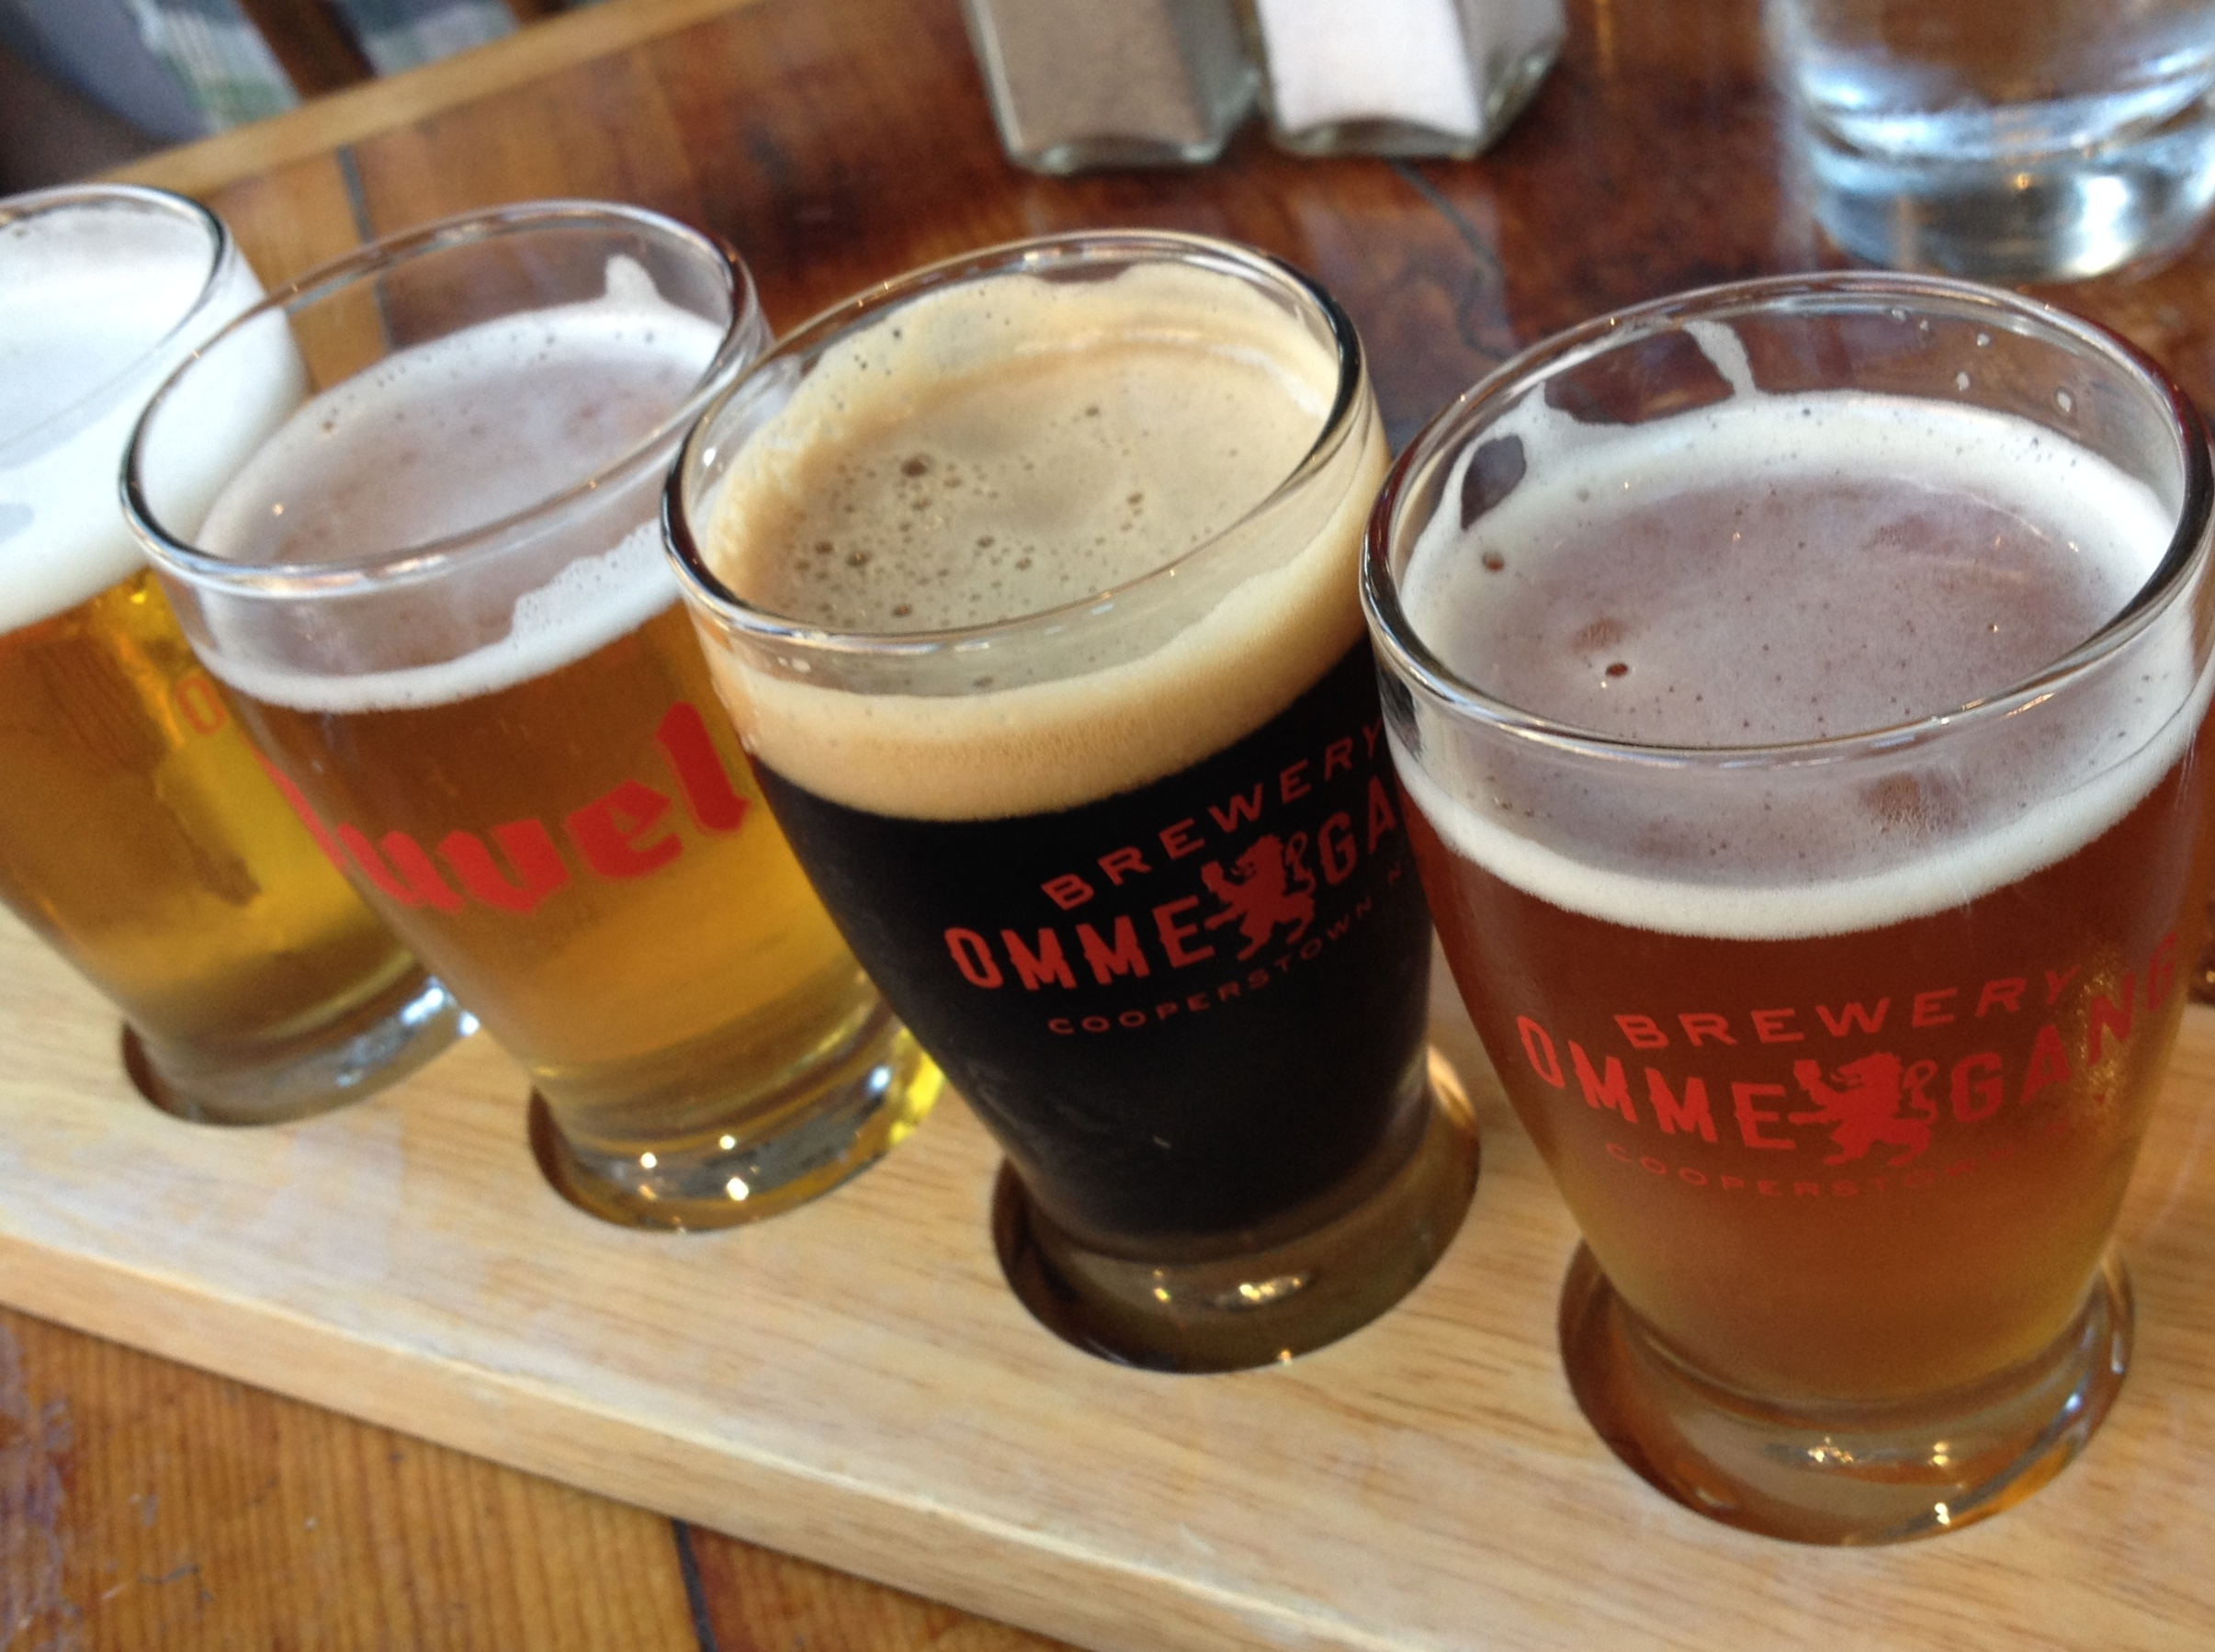 Cooper 39 s craft kitchen east village nyc food and for Coopers craft bourbon review